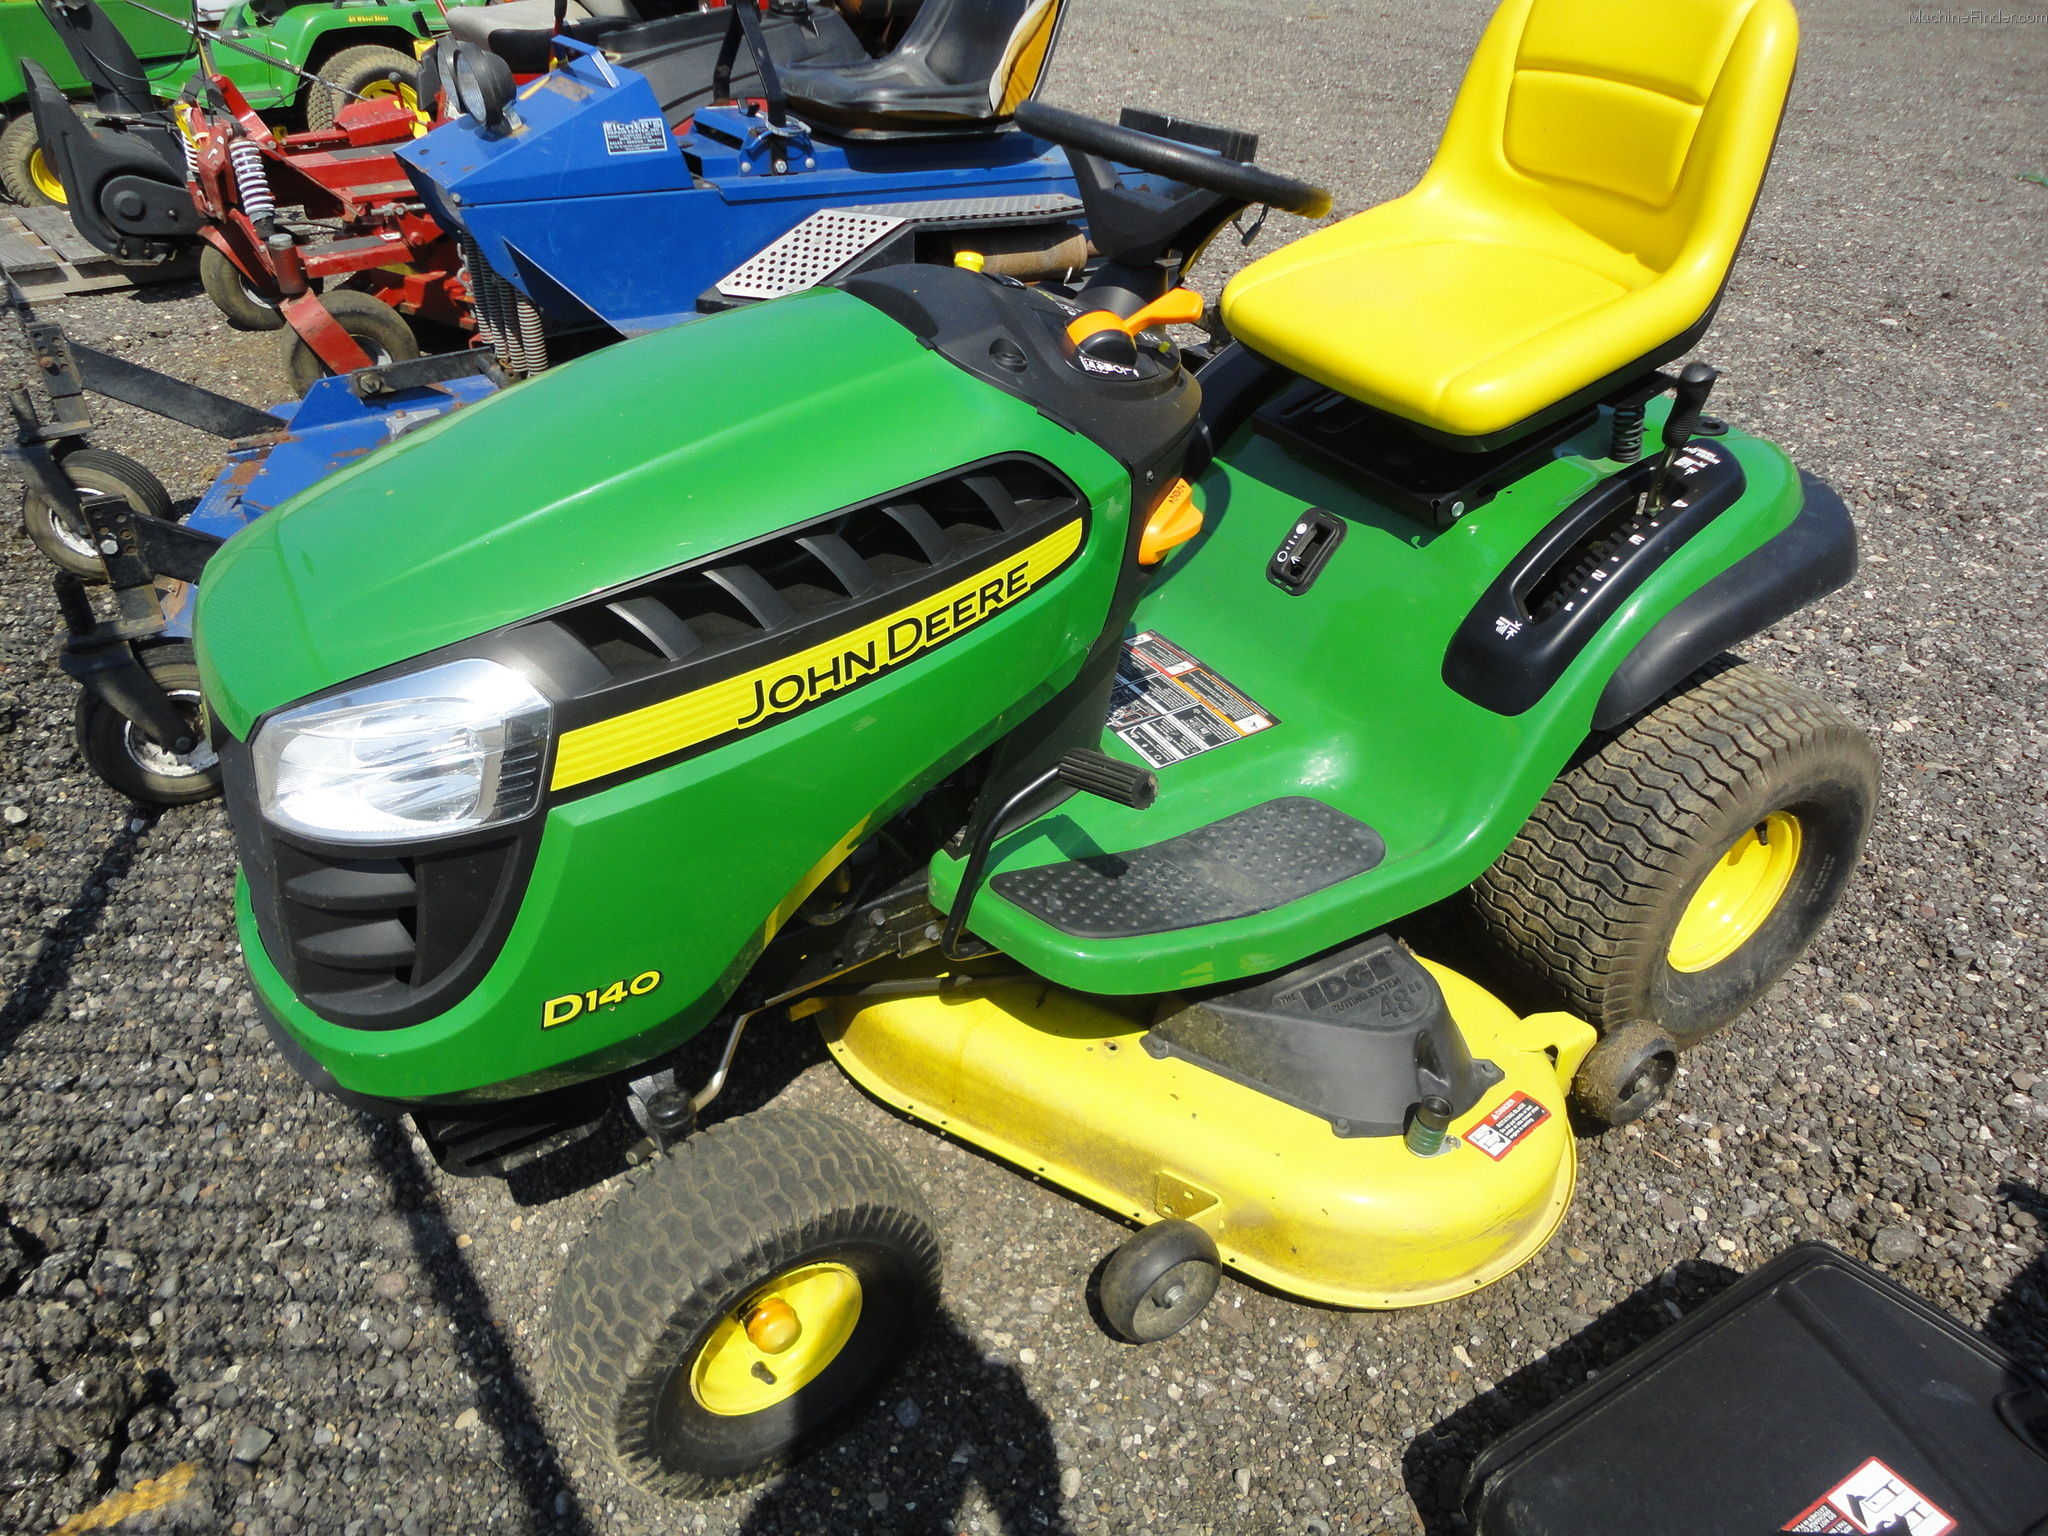 John Deere D140 Lawn & Garden and Commercial Mowing - John ...